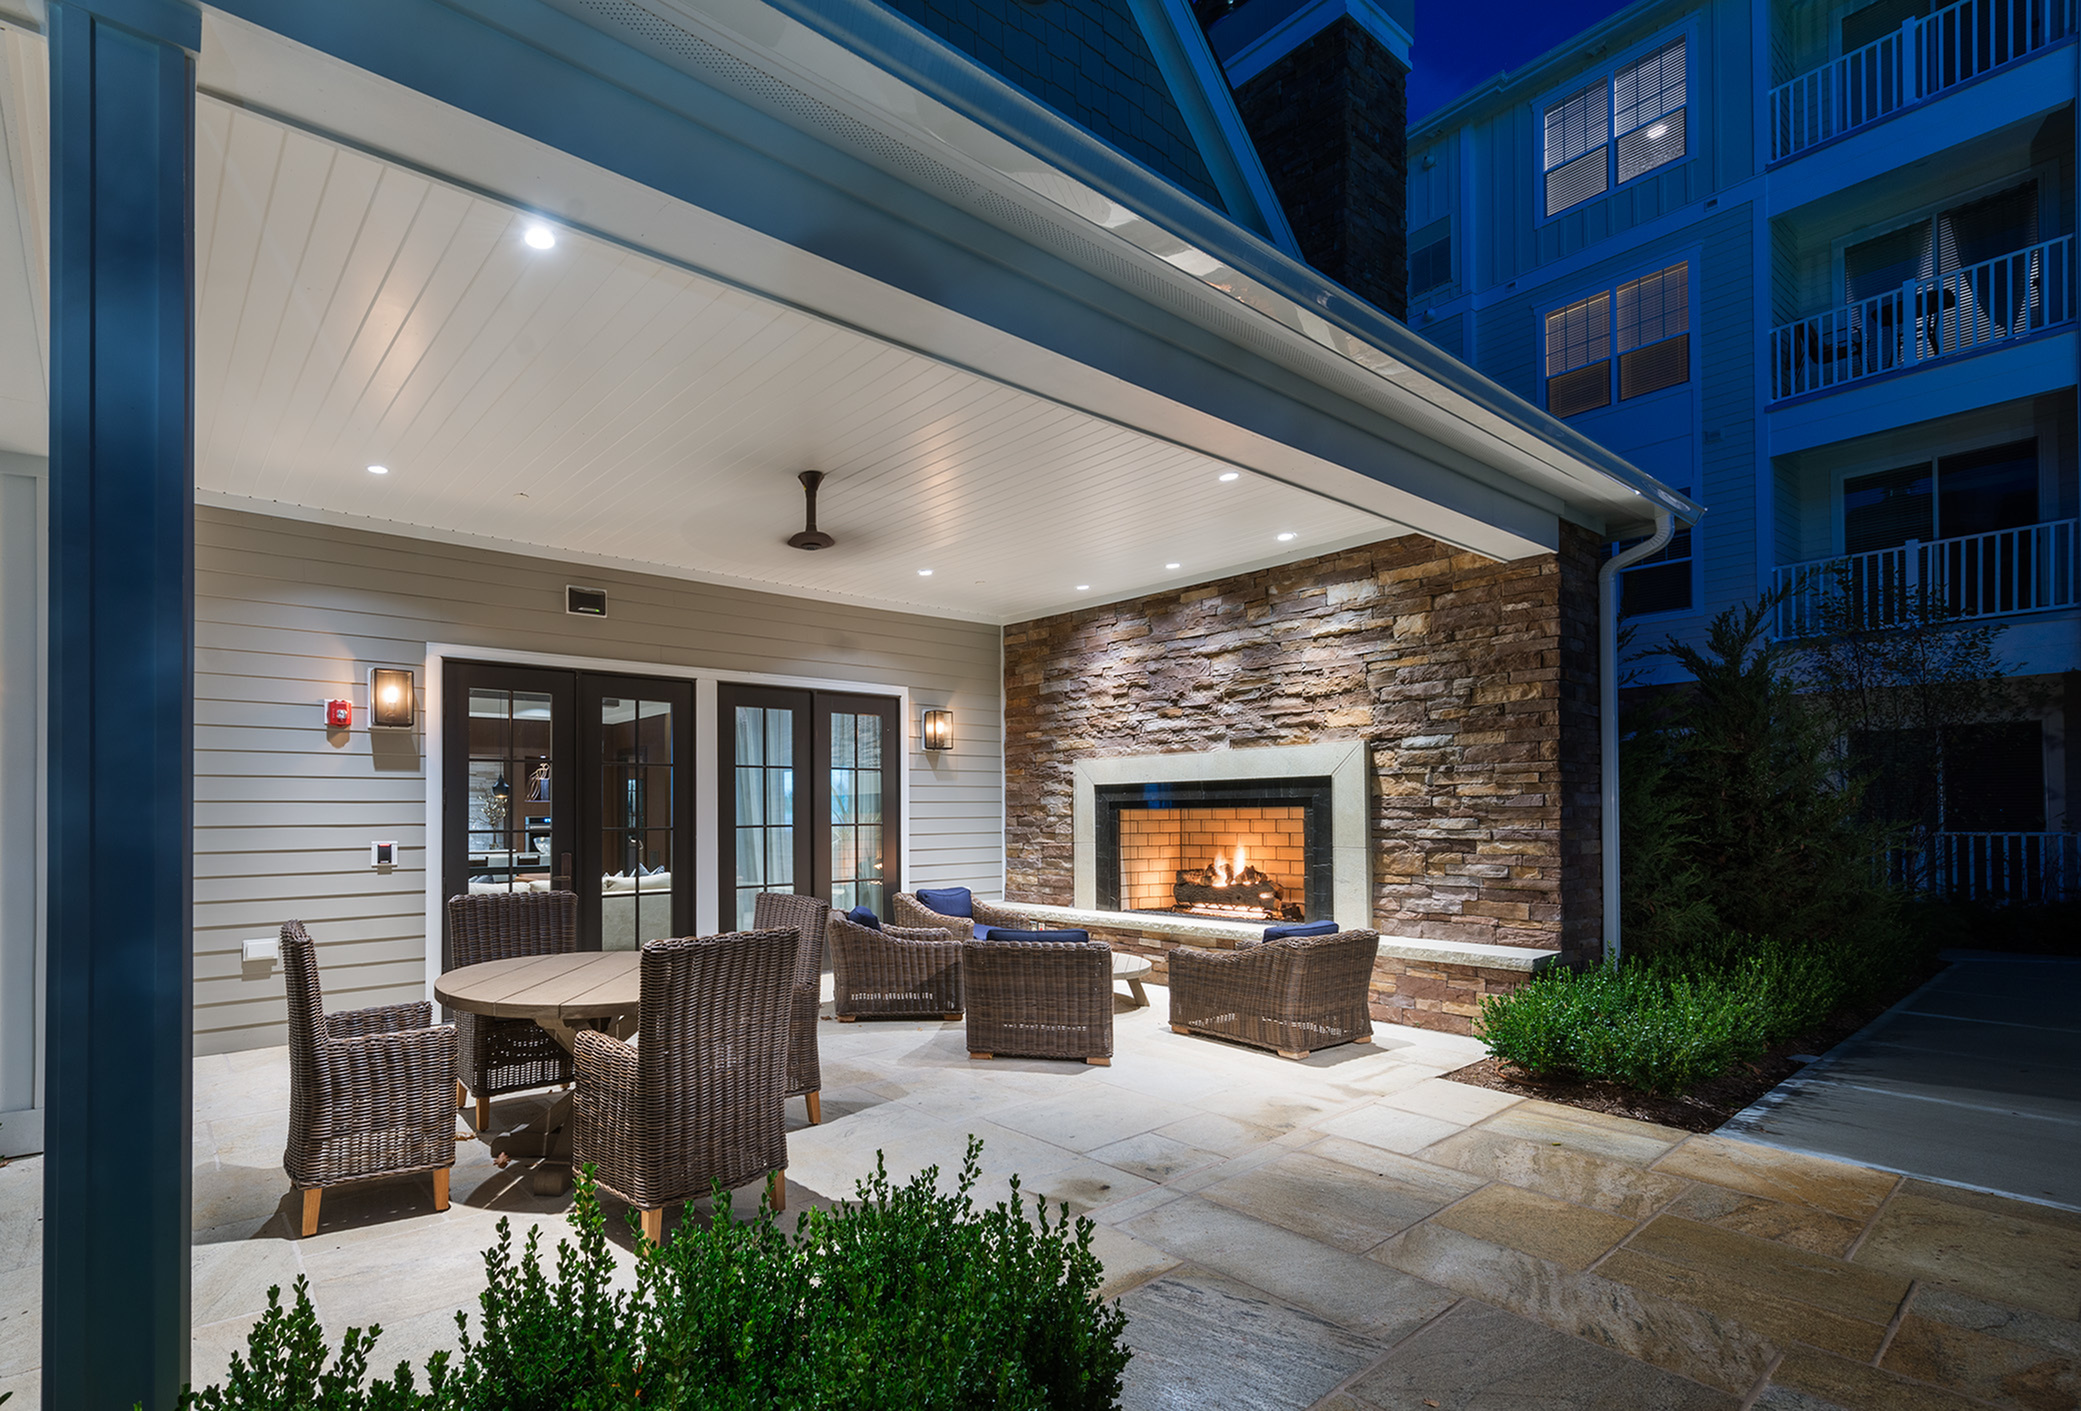 Image of Cafe patio with outdoor seating and fireplace for Hanover at Andover